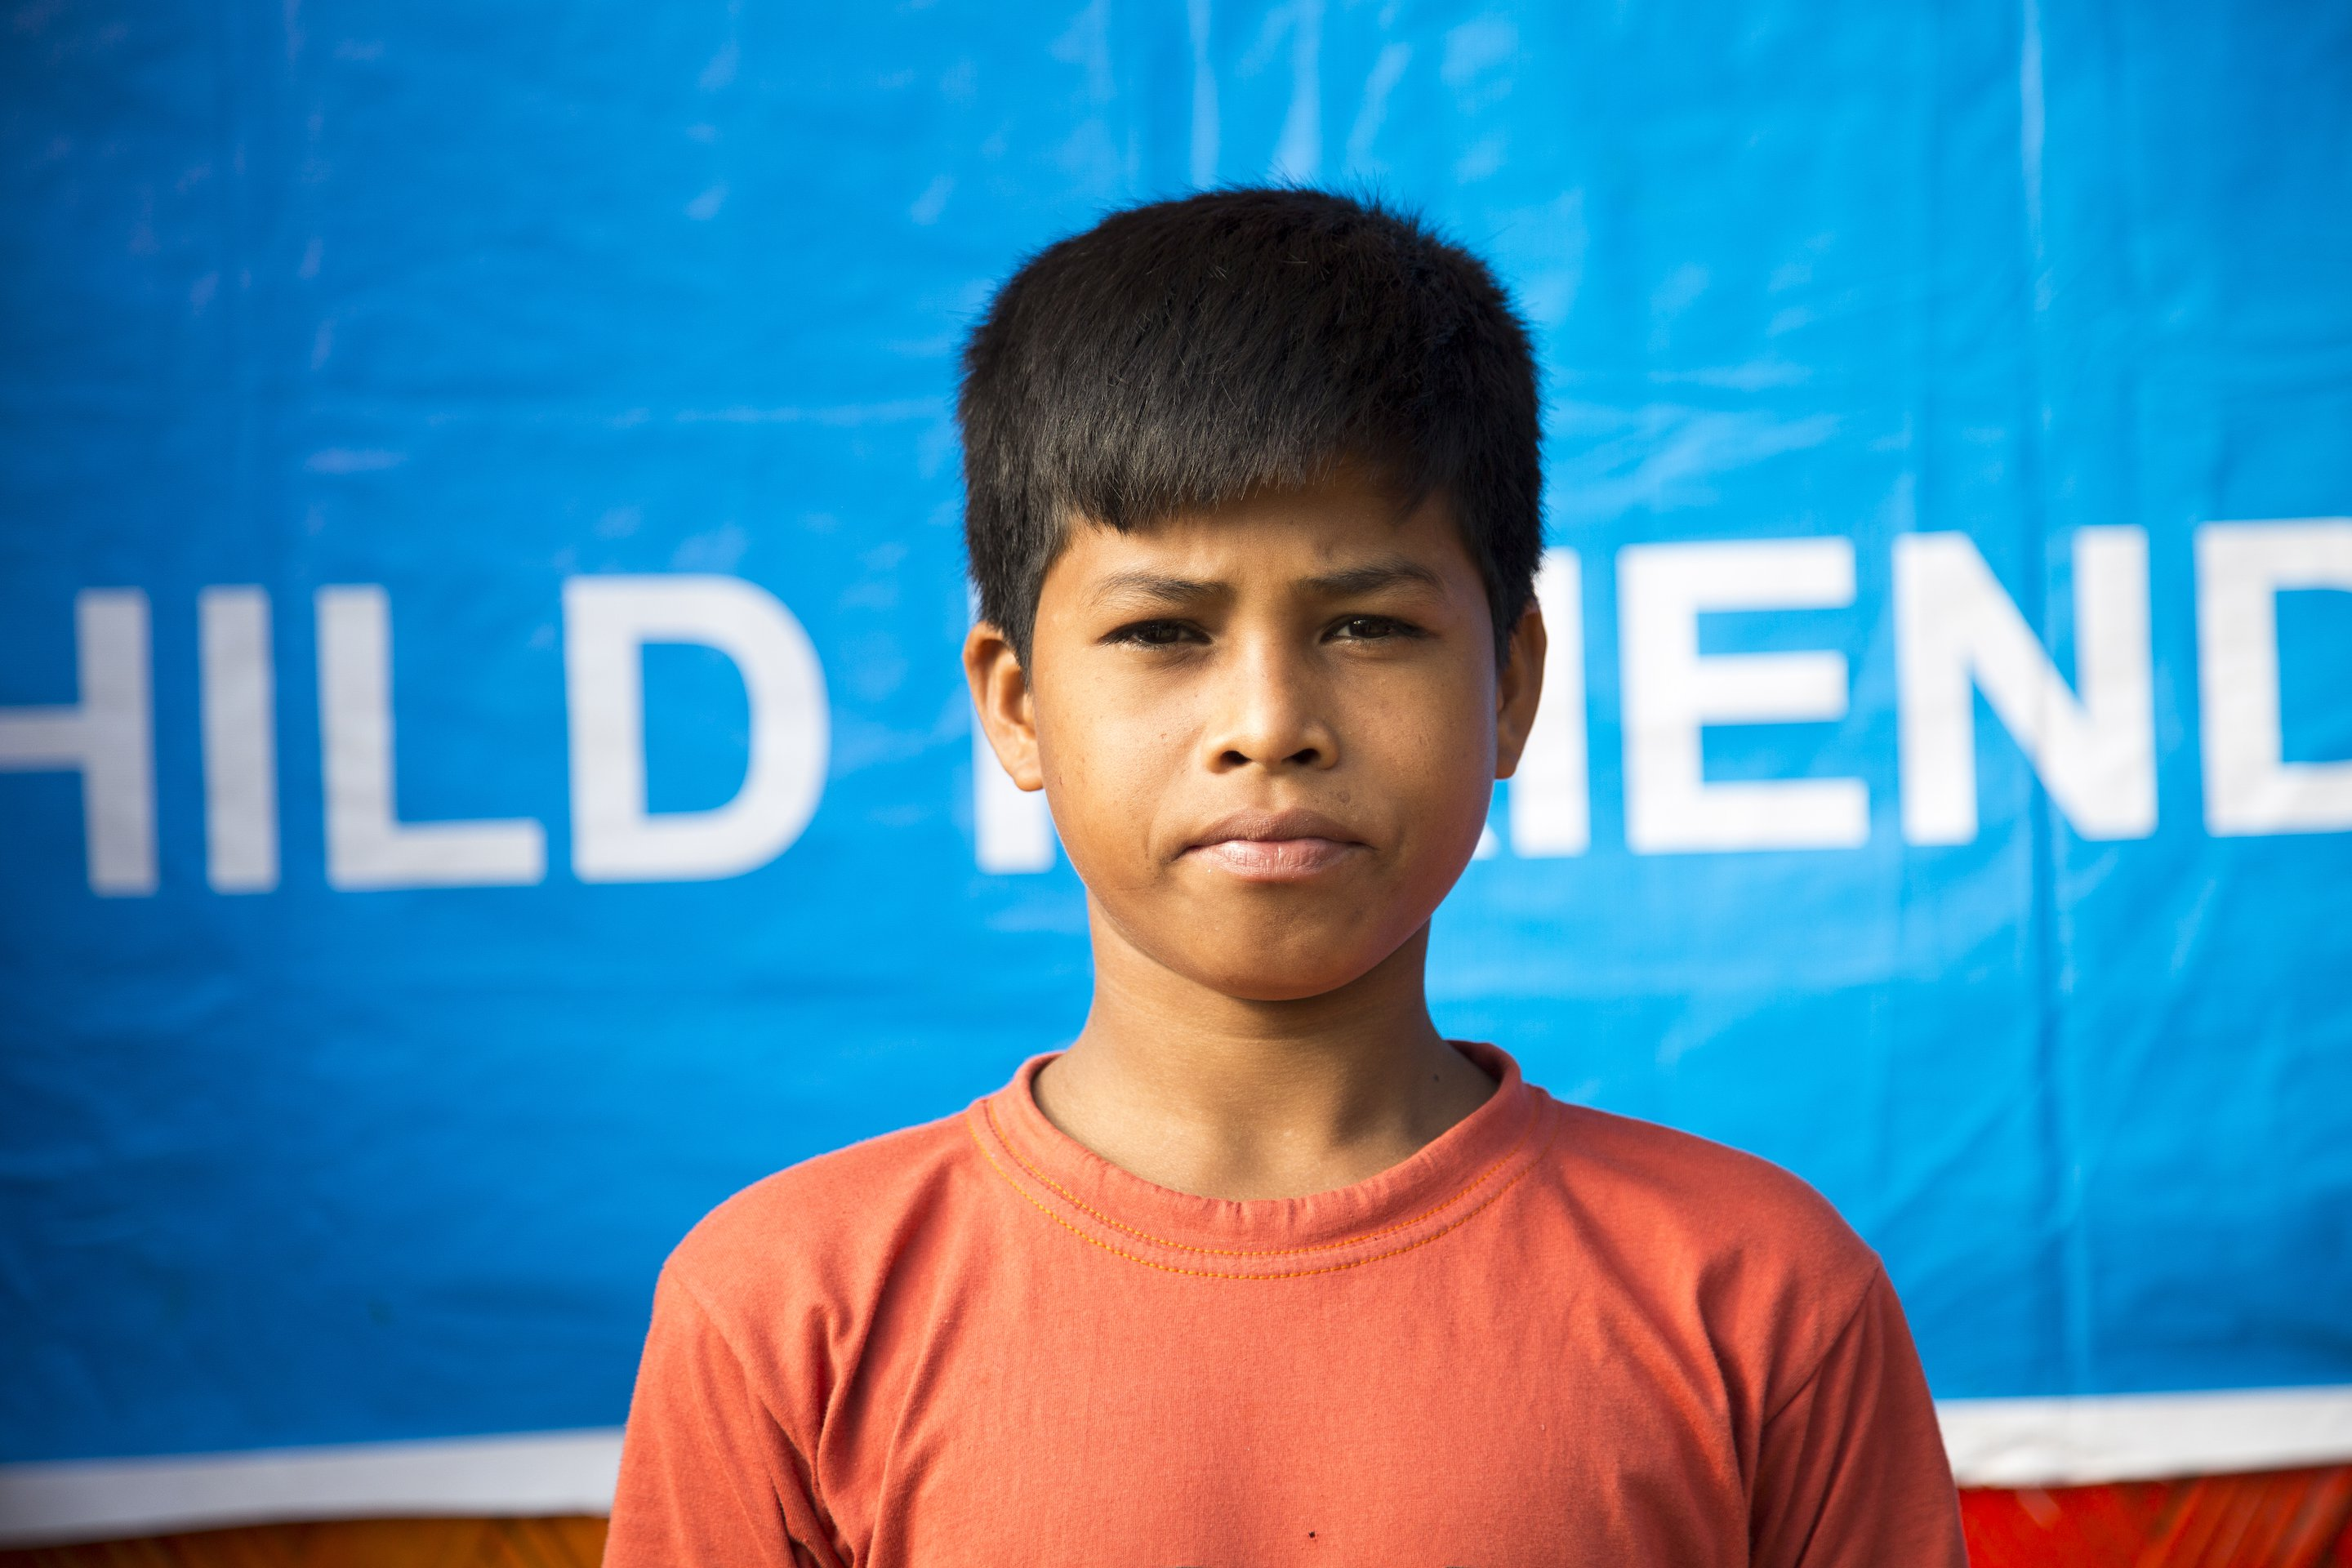 12-year-old boy from the Rohingya community in Bangladesh